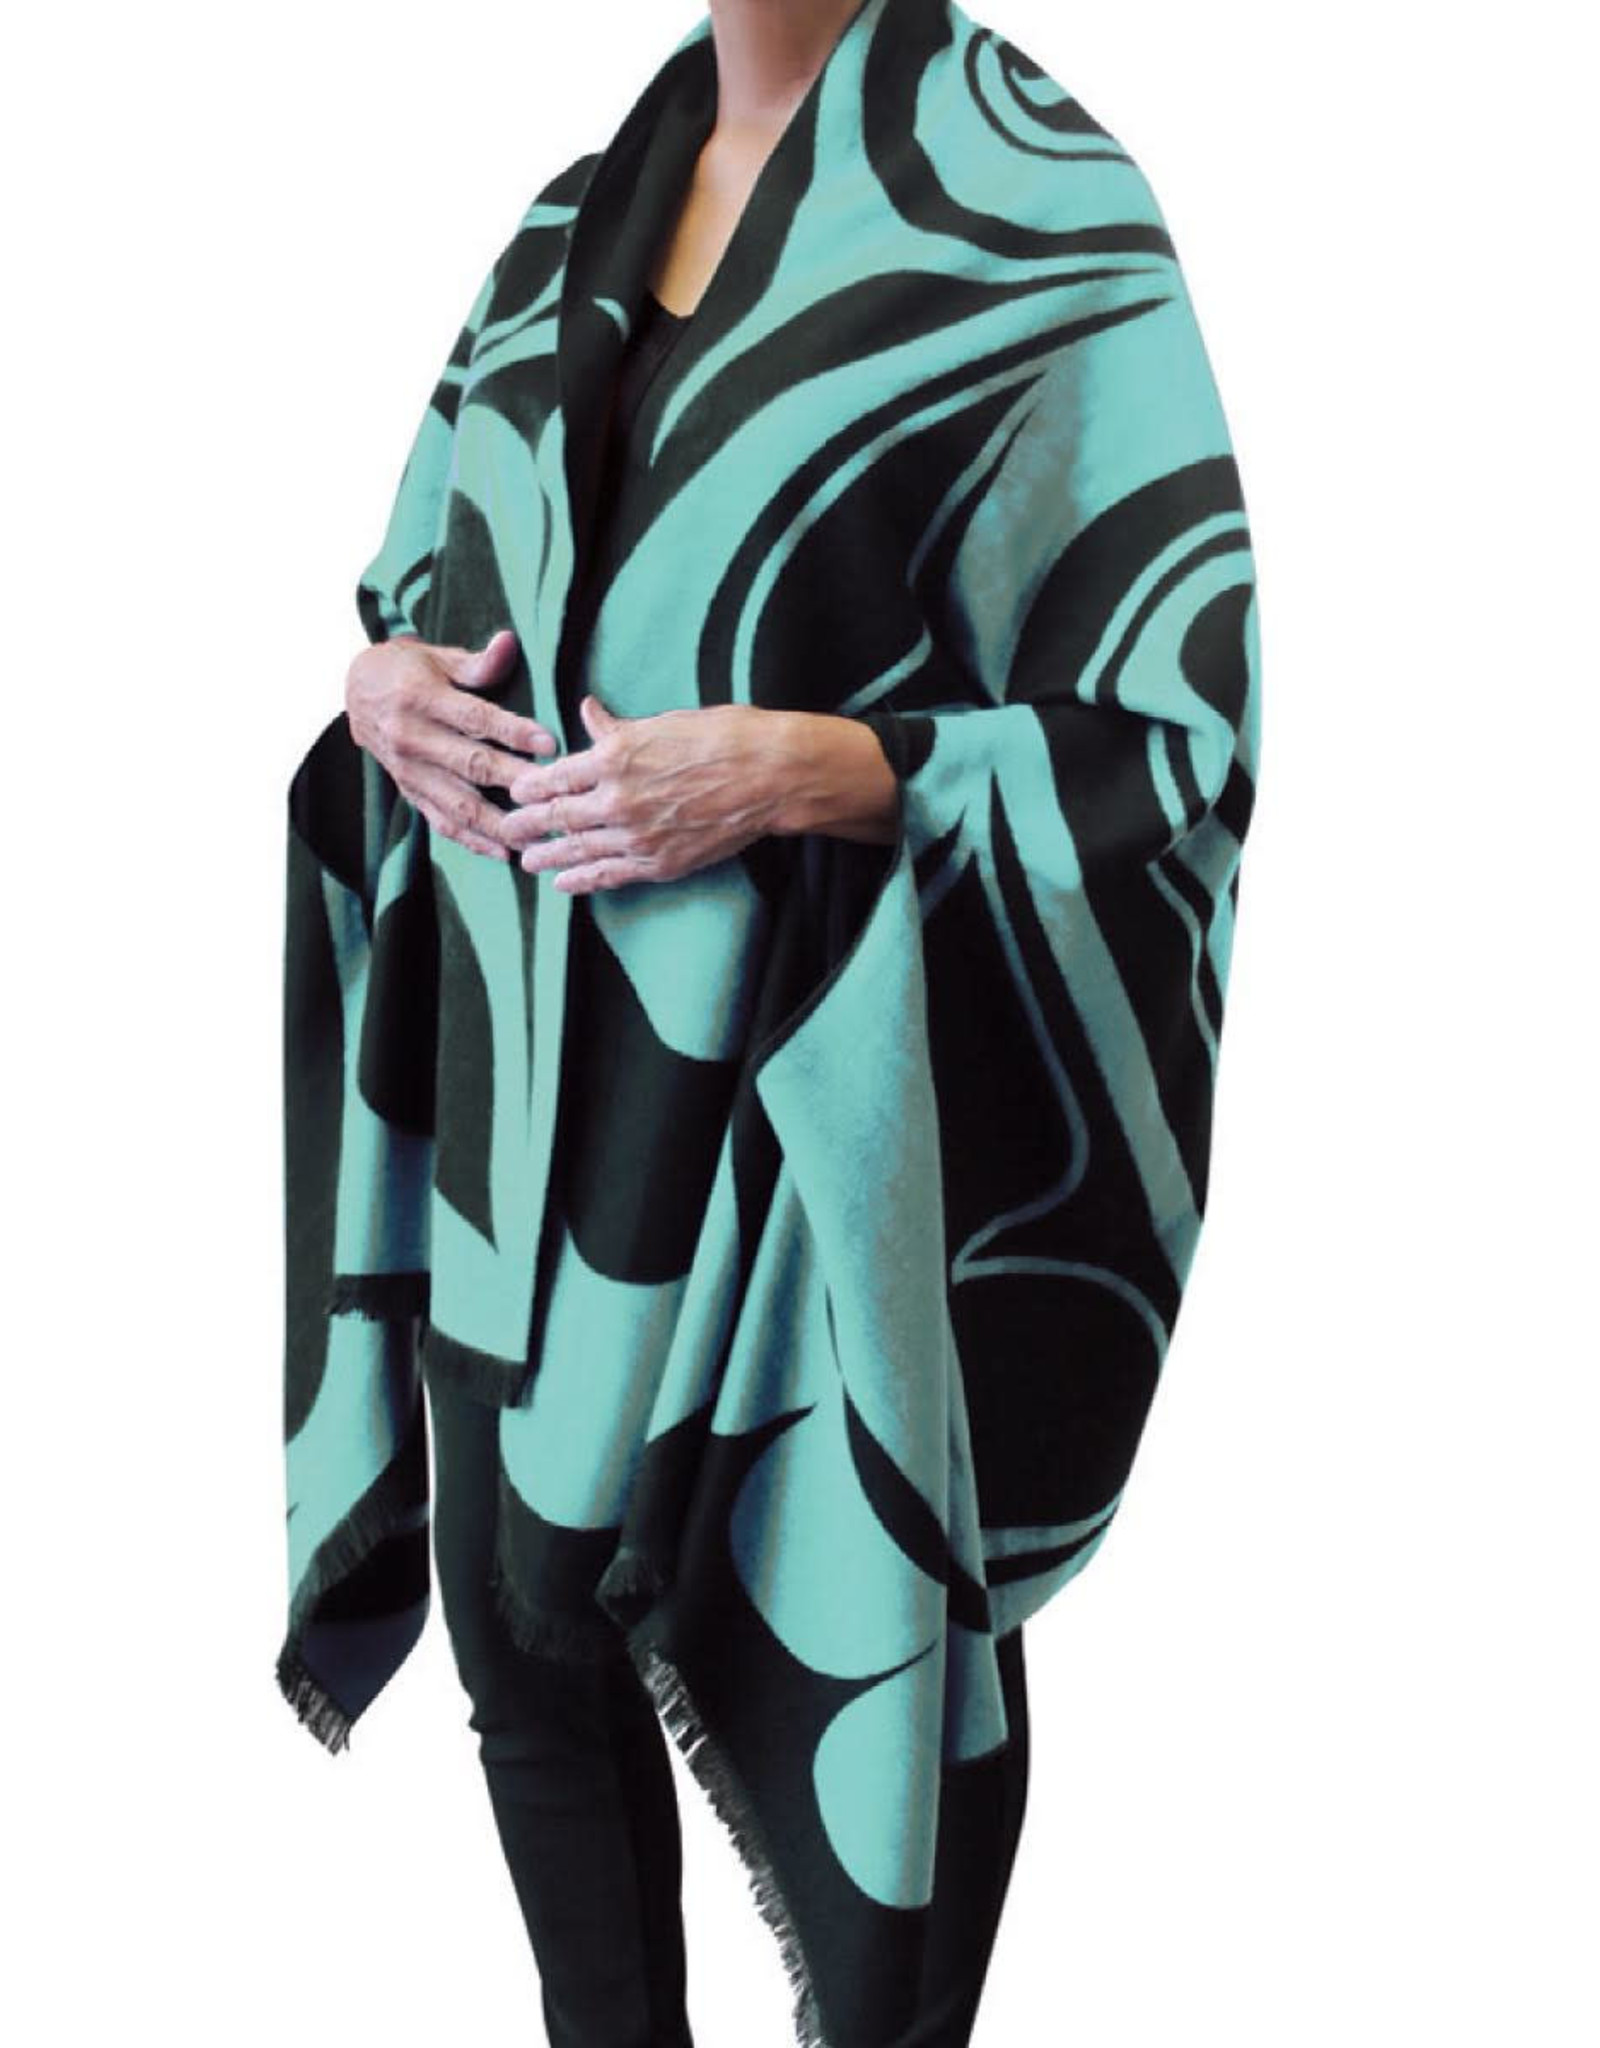 Reversible Fashion Cape - Eagle by Roger Smith